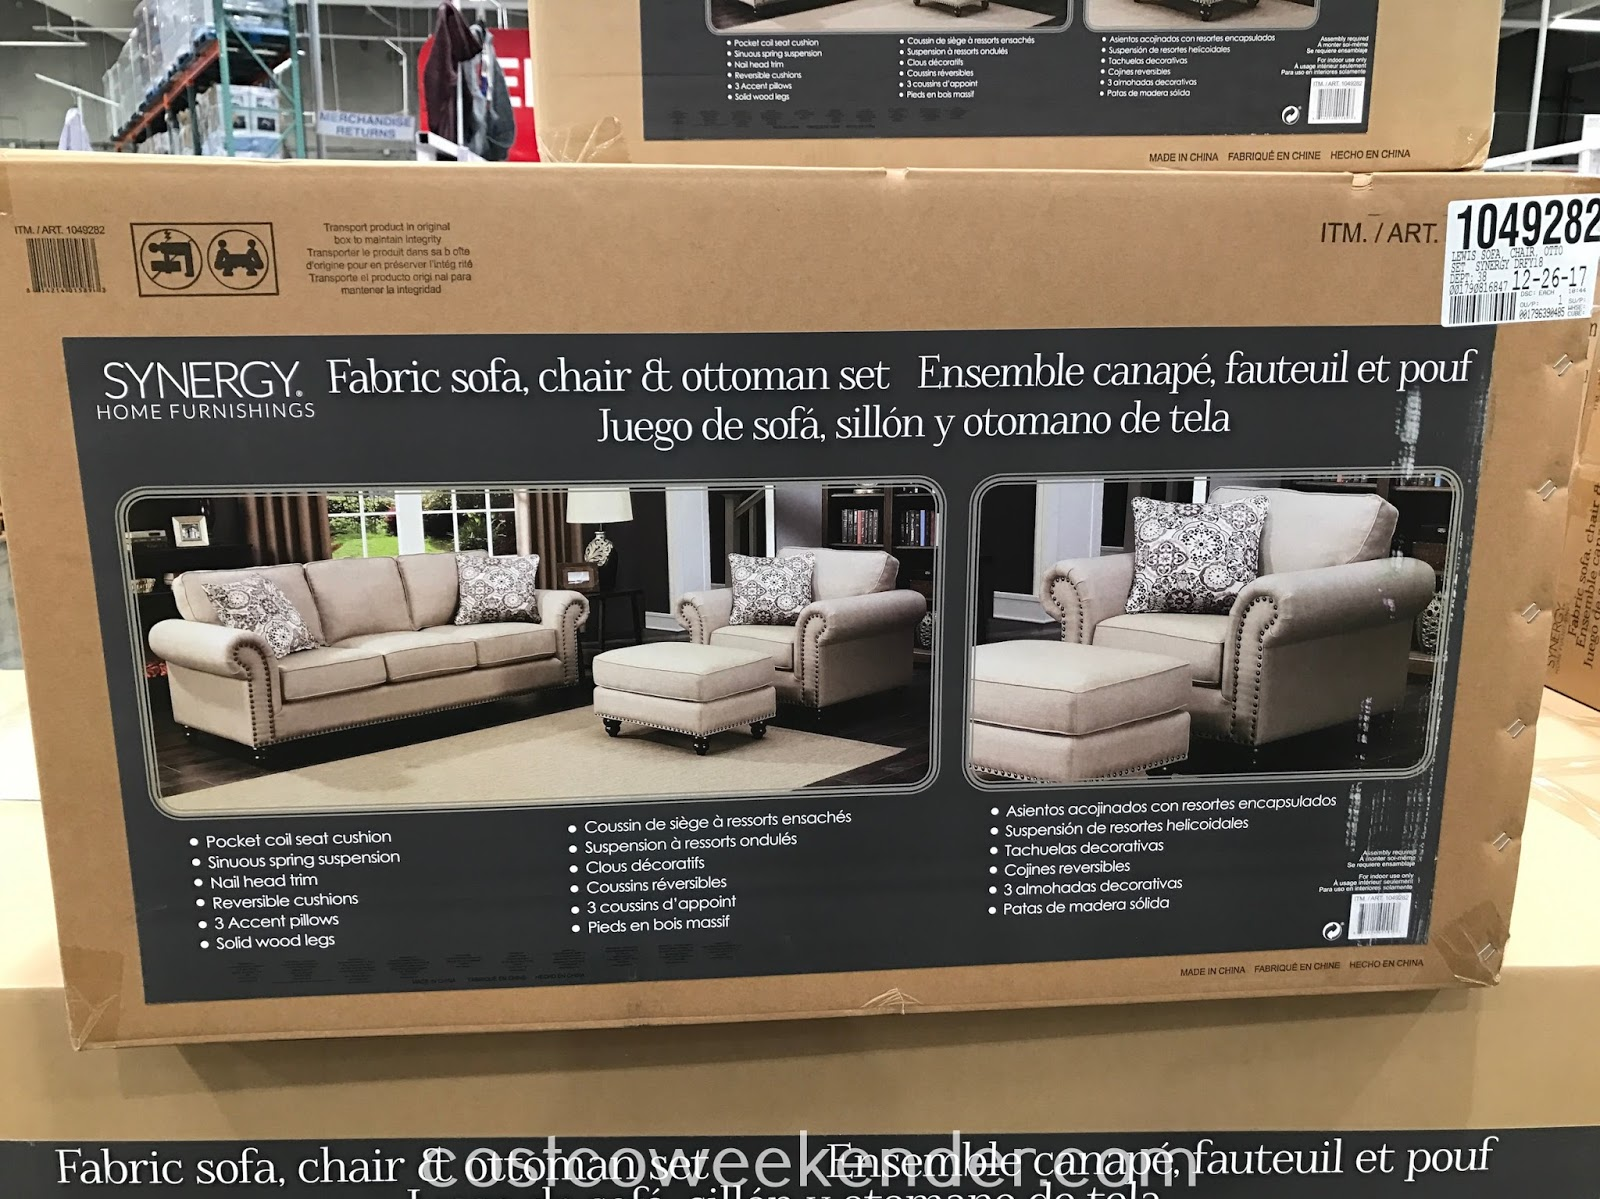 Costco 1049282 - Make your living room or family room complete with the Synergy Home Fabric Sofa, Chair & Ottoman Set